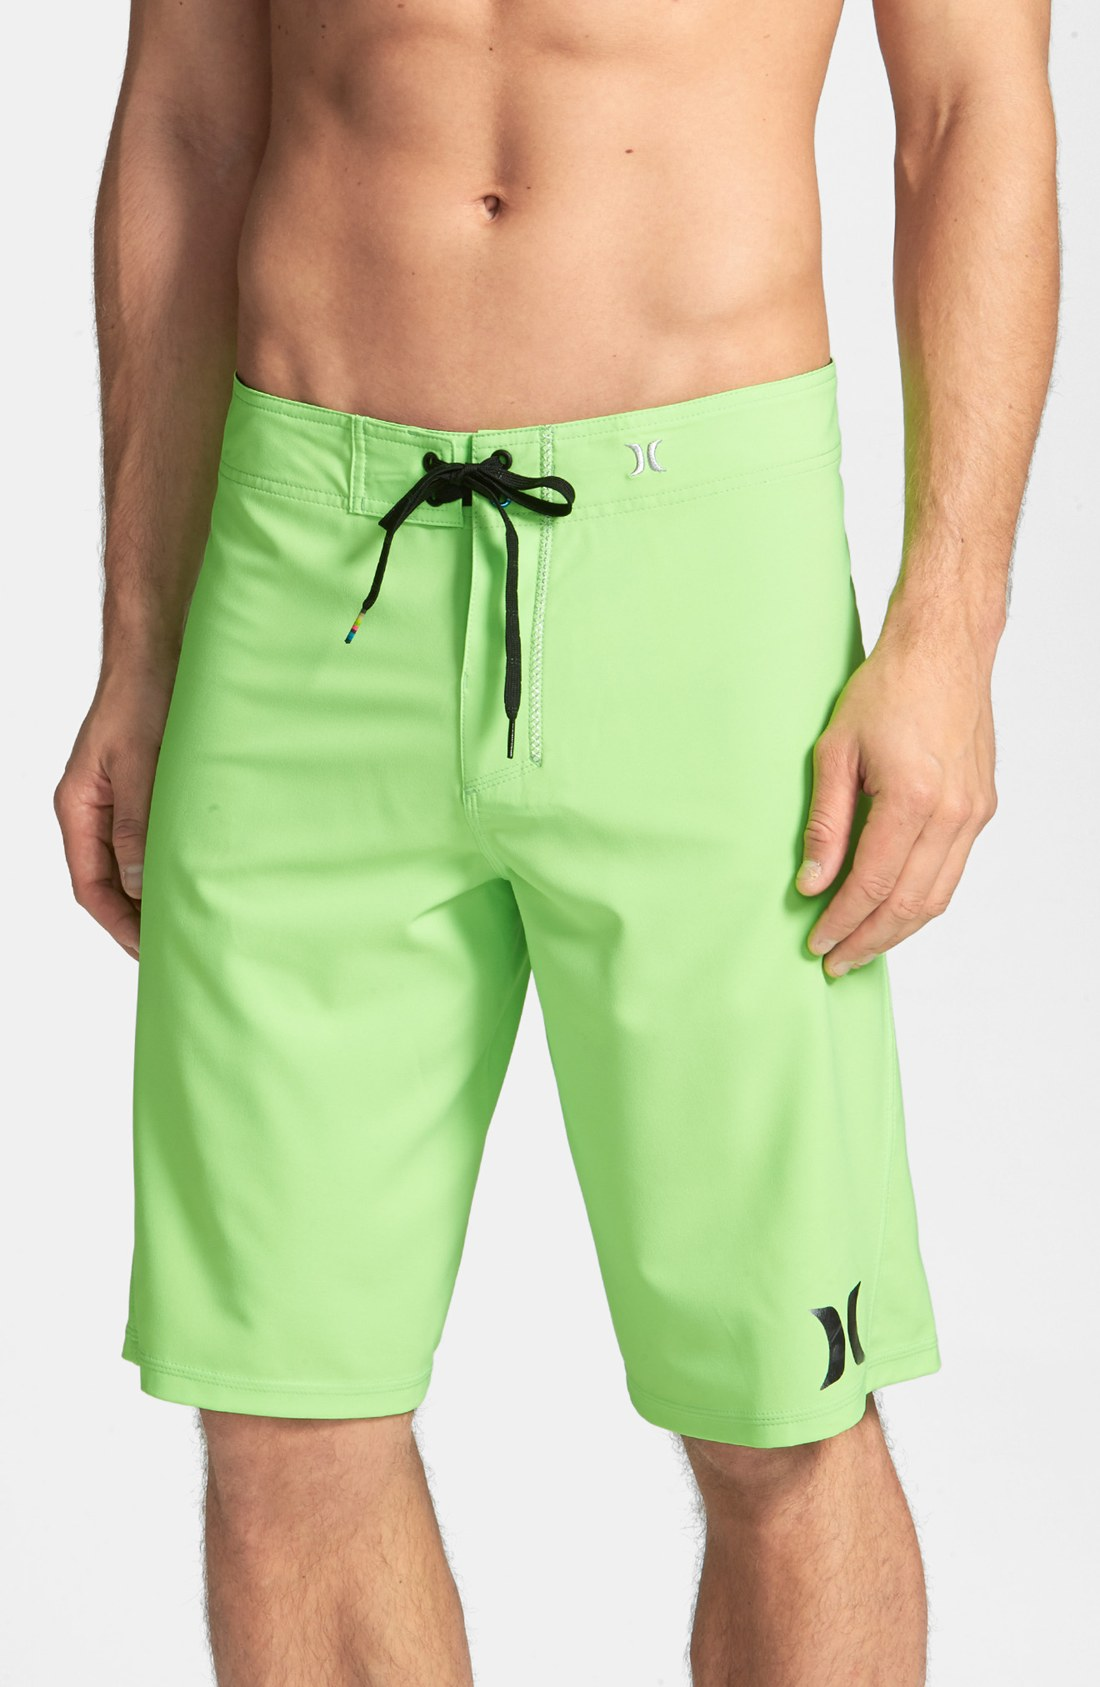 Find great deals on eBay for neon green shorts men. Shop with confidence.